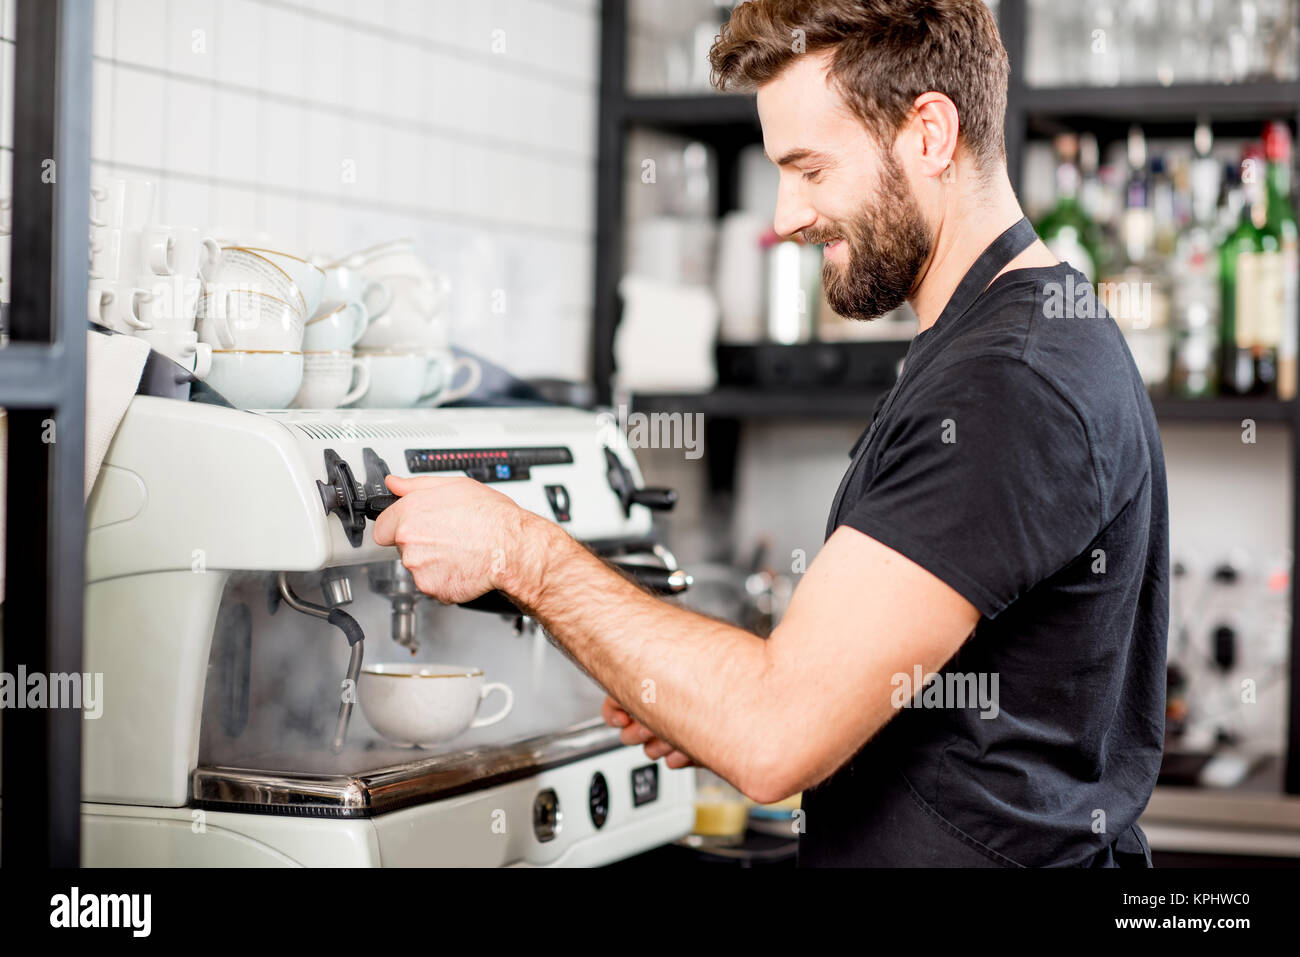 Faire le café barista Photo Stock